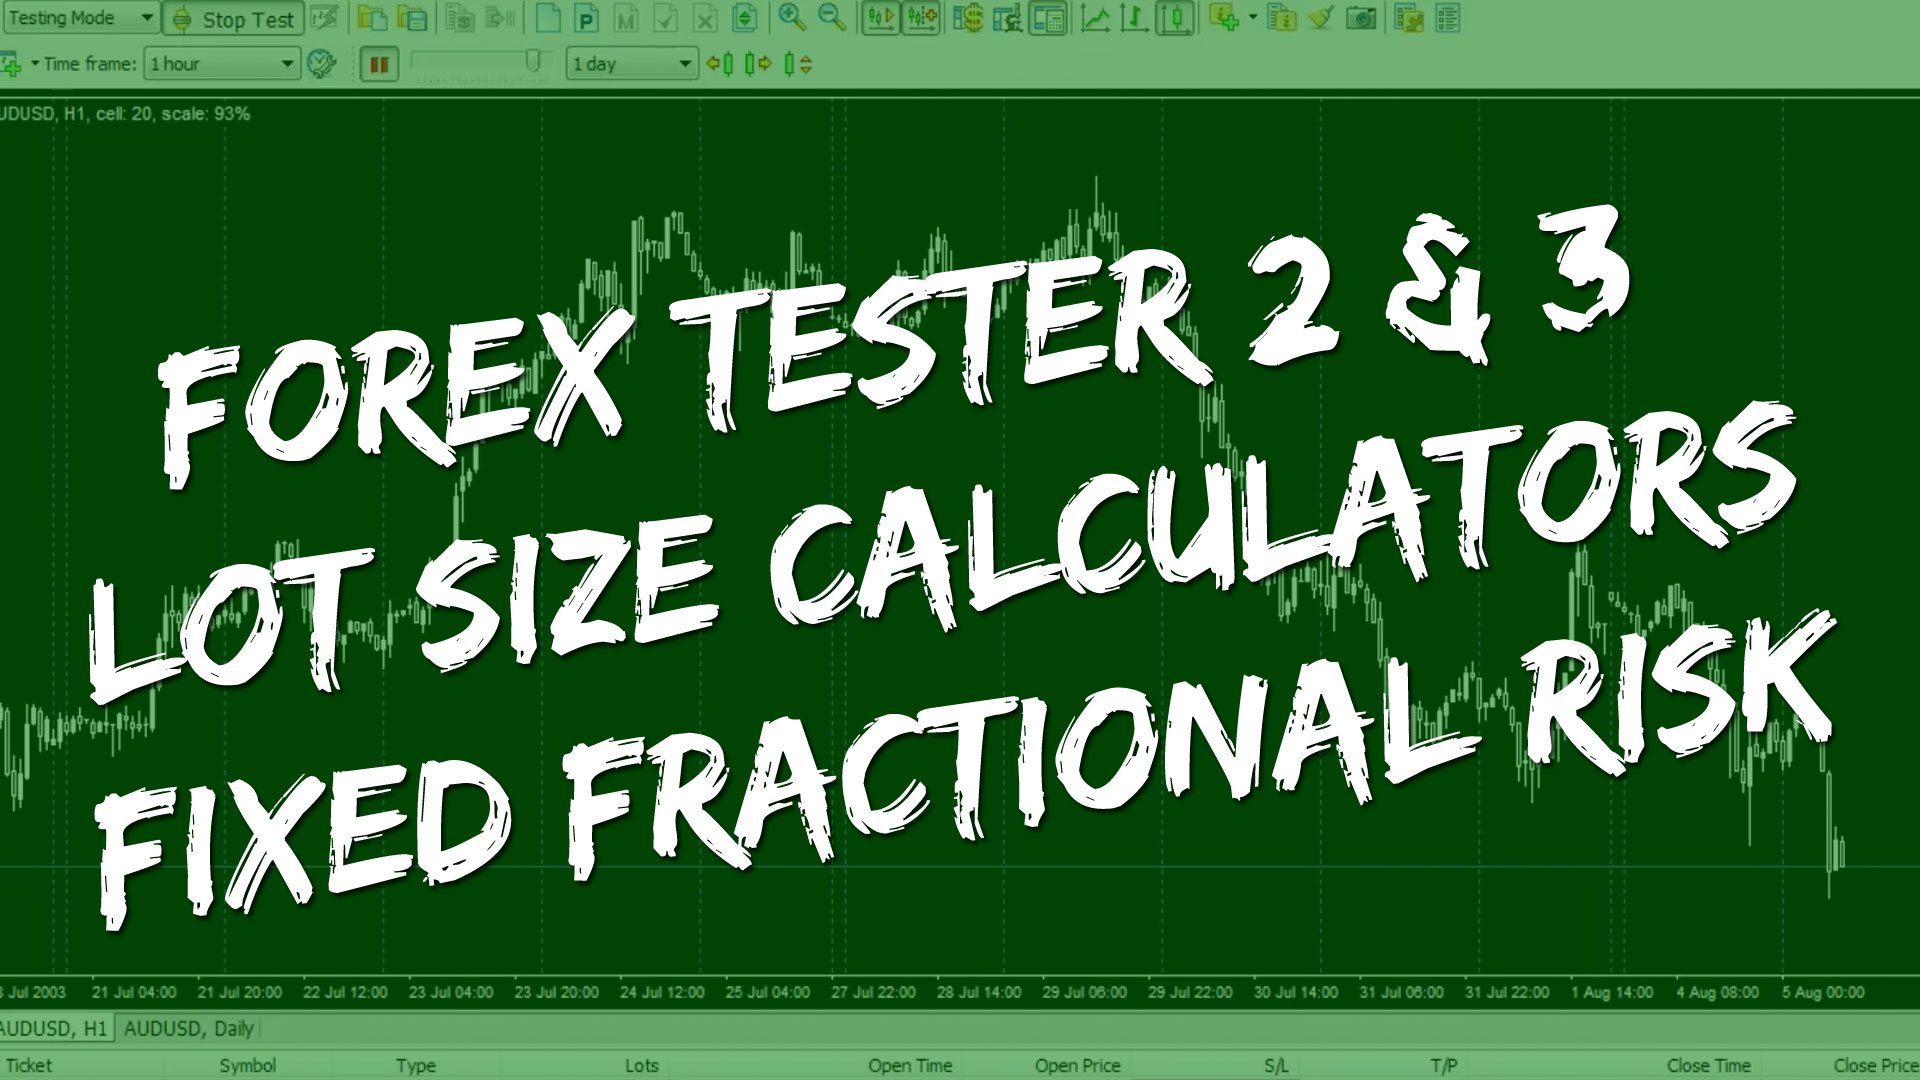 Forex Backtesting Spreadsheet Intended For Fastest Ways To Calculate Forex Tester Lot Size With Percent Risk